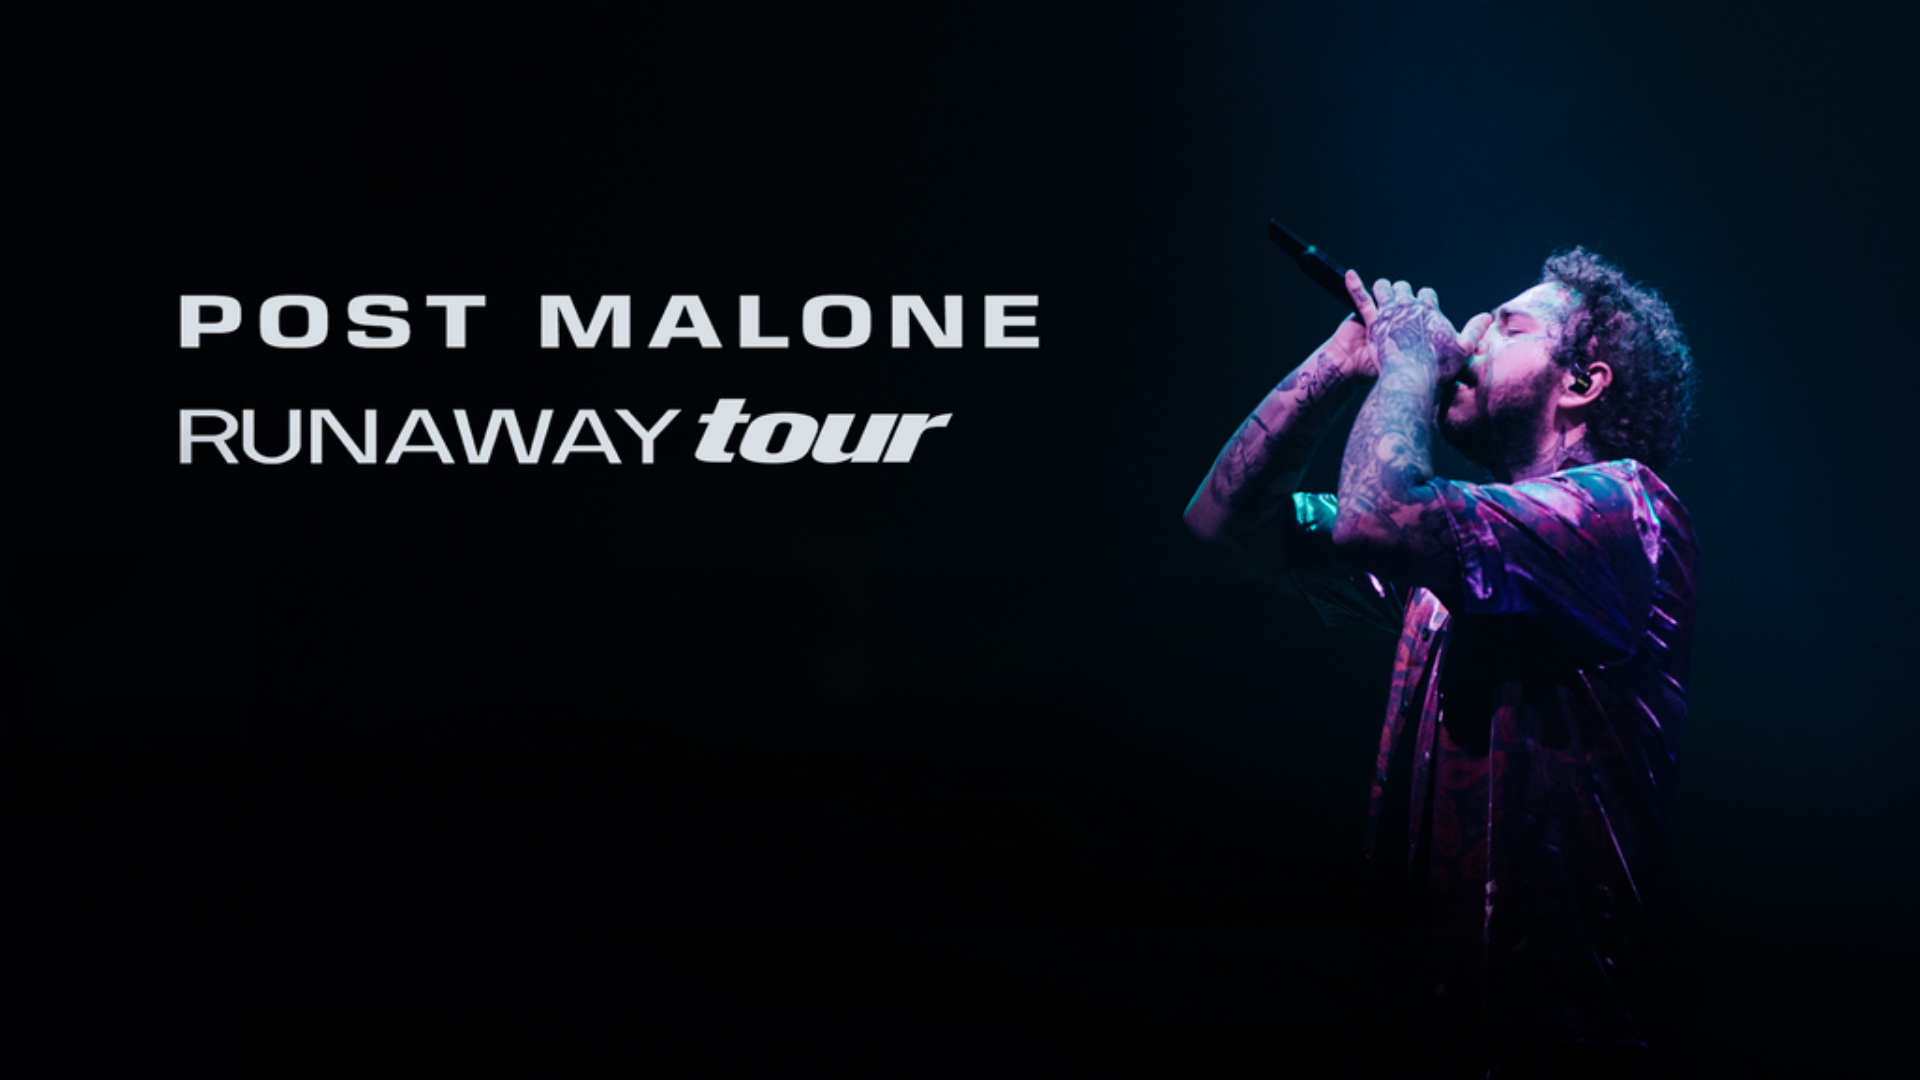 Post Malone Concert Coming to Oculus Venues for Free on October 17th – Road to VR